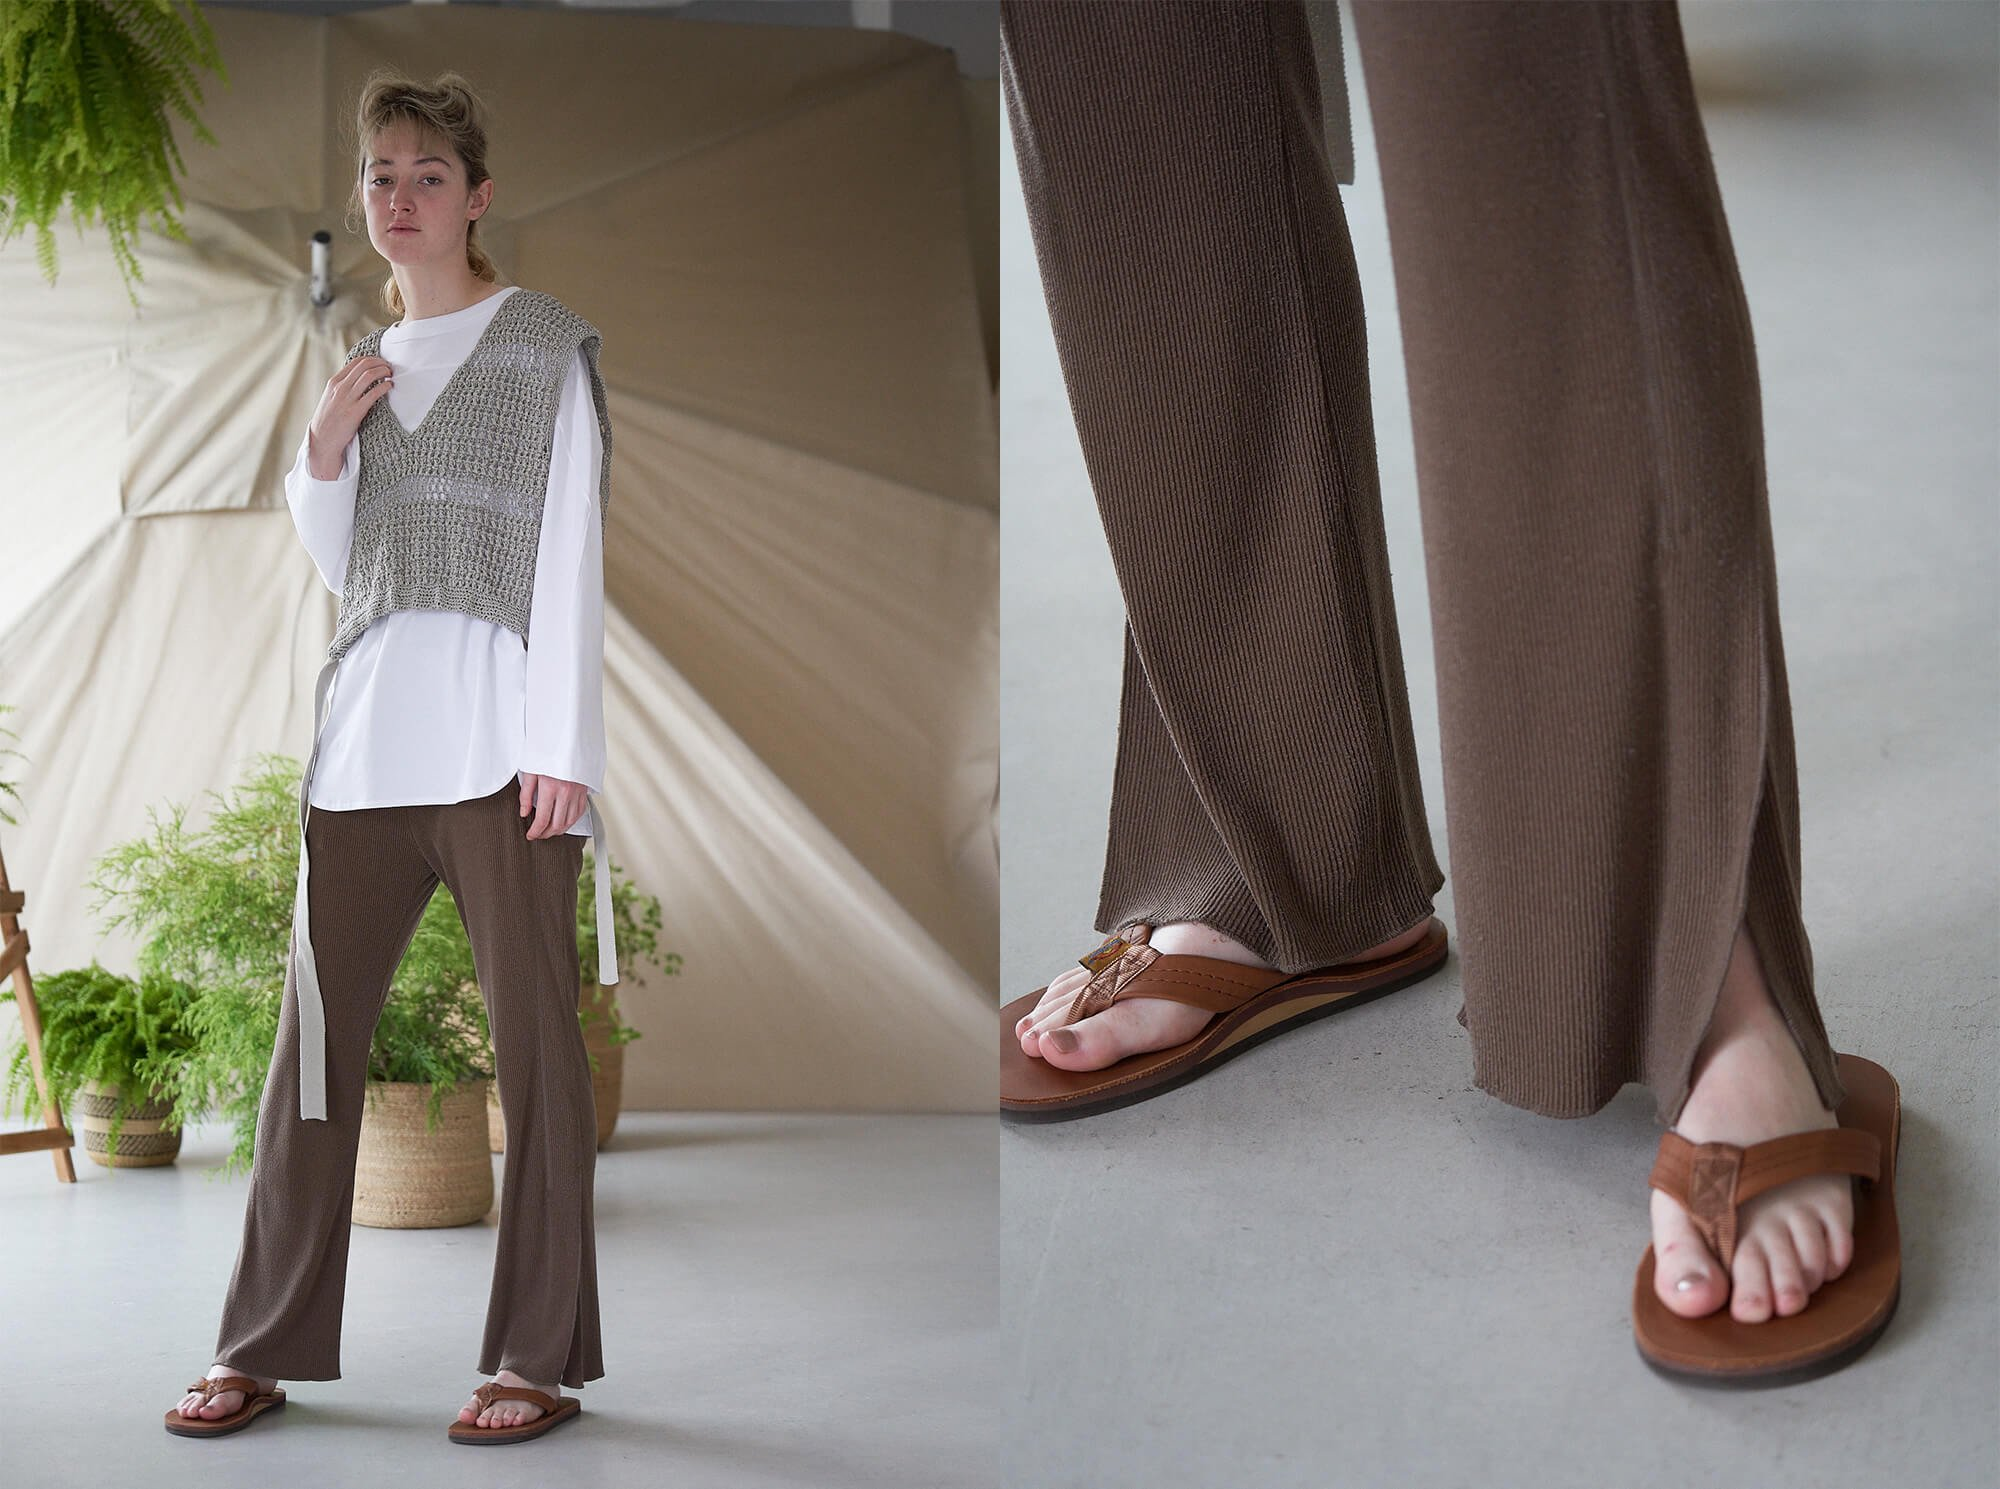 <img class='new_mark_img1' src='https://img.shop-pro.jp/img/new/icons14.gif' style='border:none;display:inline;margin:0px;padding:0px;width:auto;' />raw silk ribbed-jersey pants